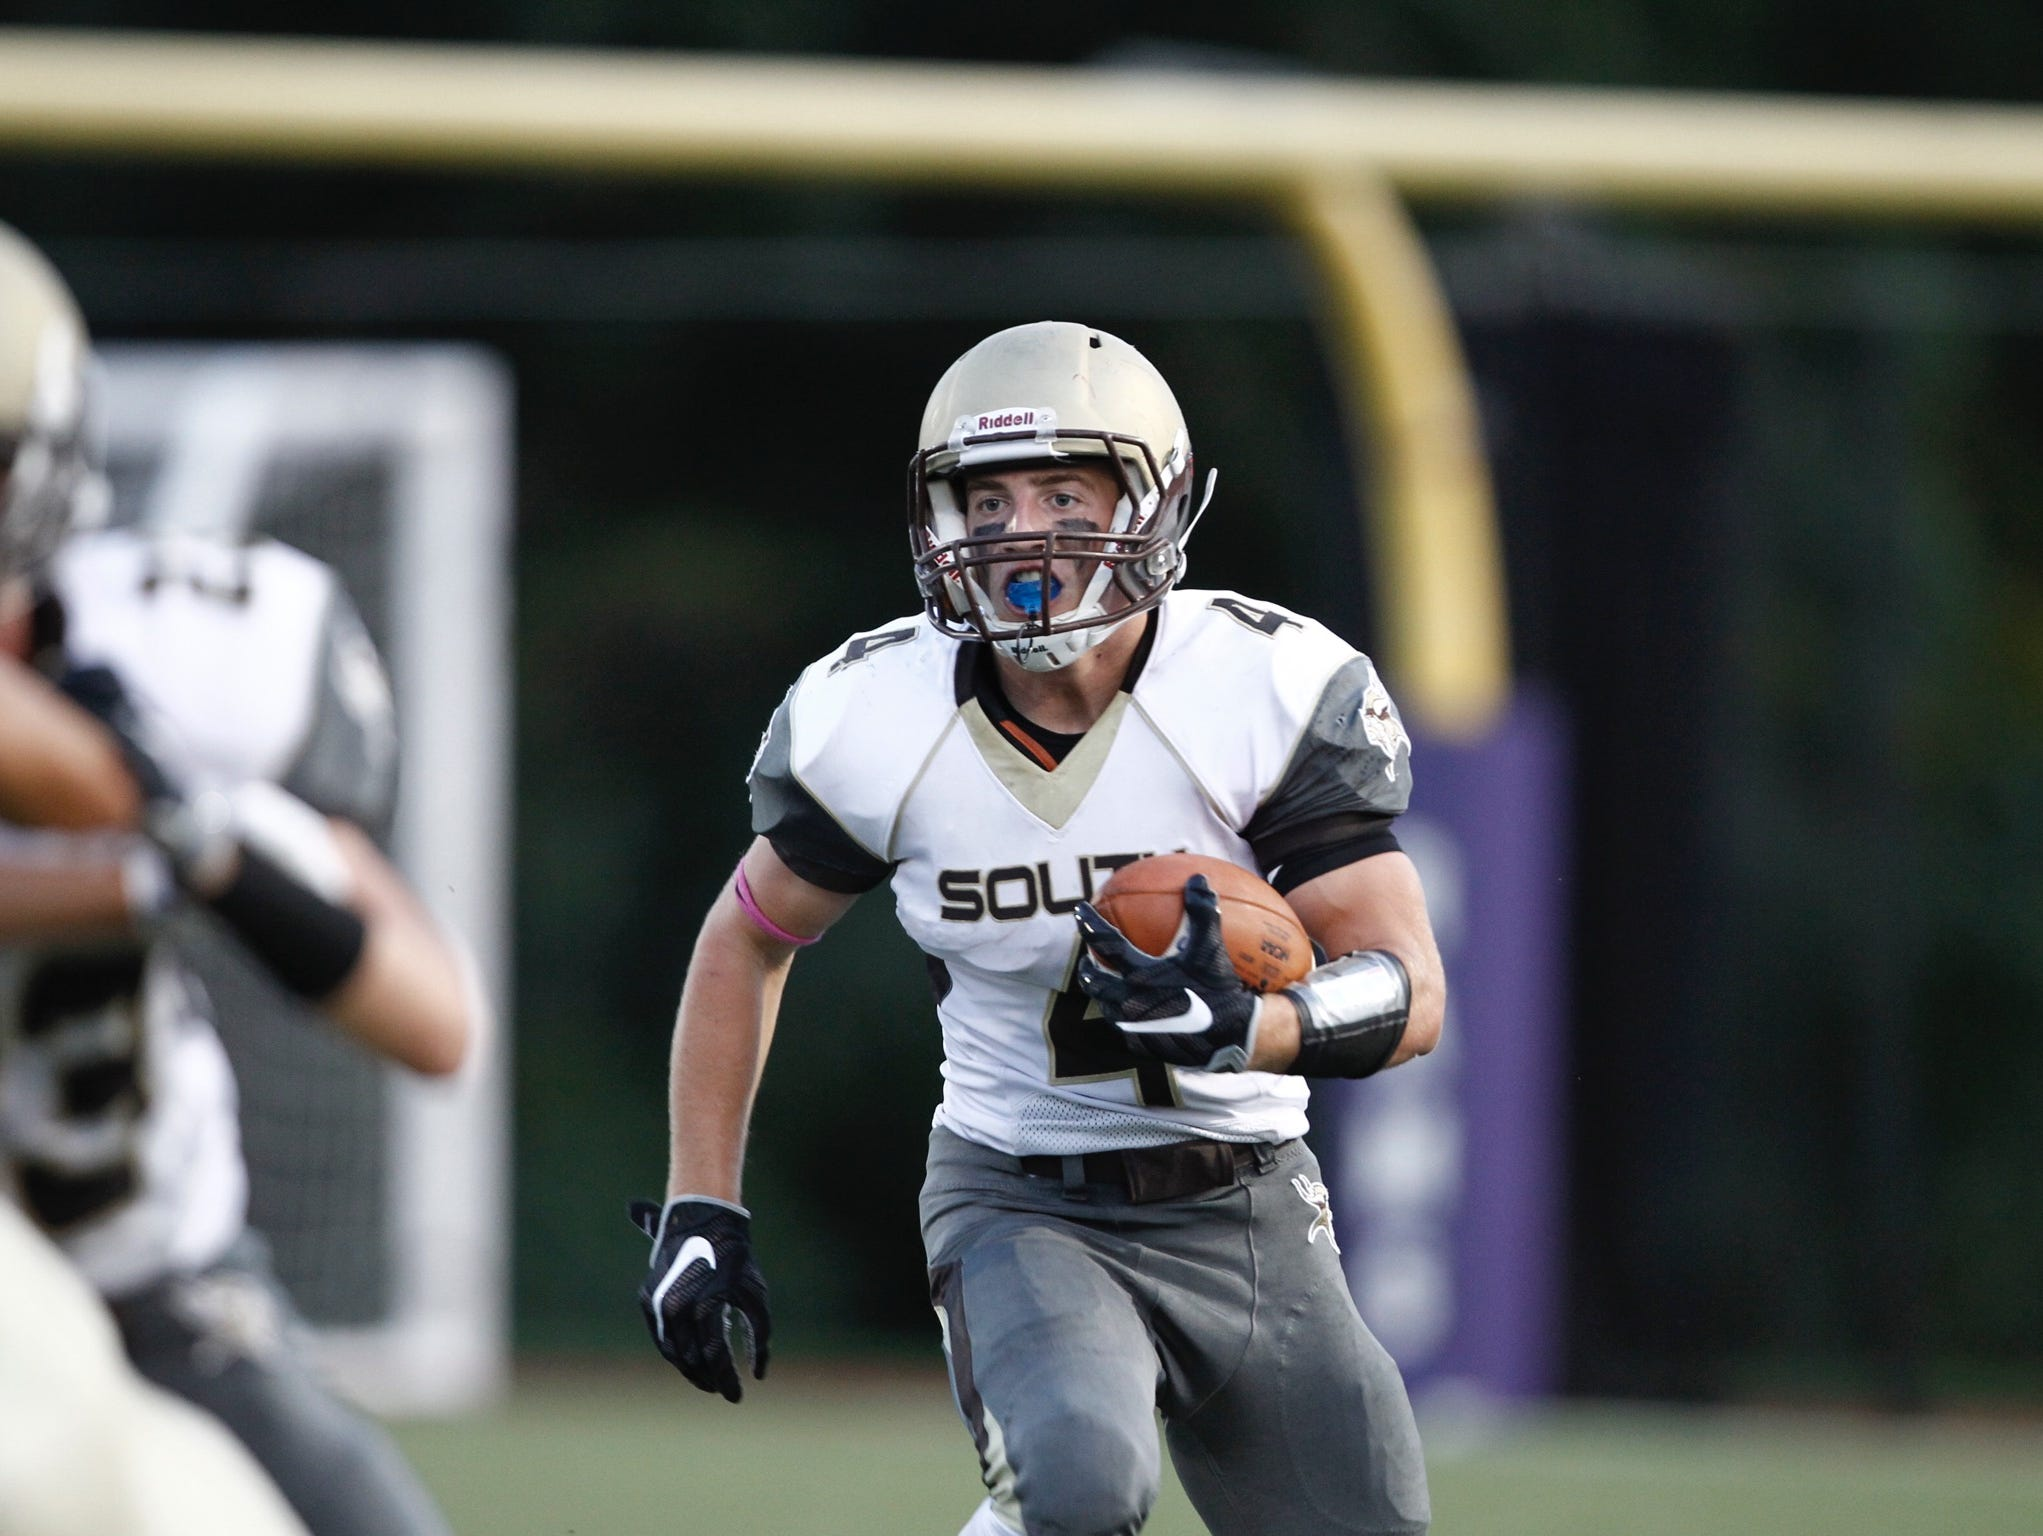 Clarkstown South senior Kyle Samuels rushes the ball during a game at Clarkstown North. Sept. 2, 2016.